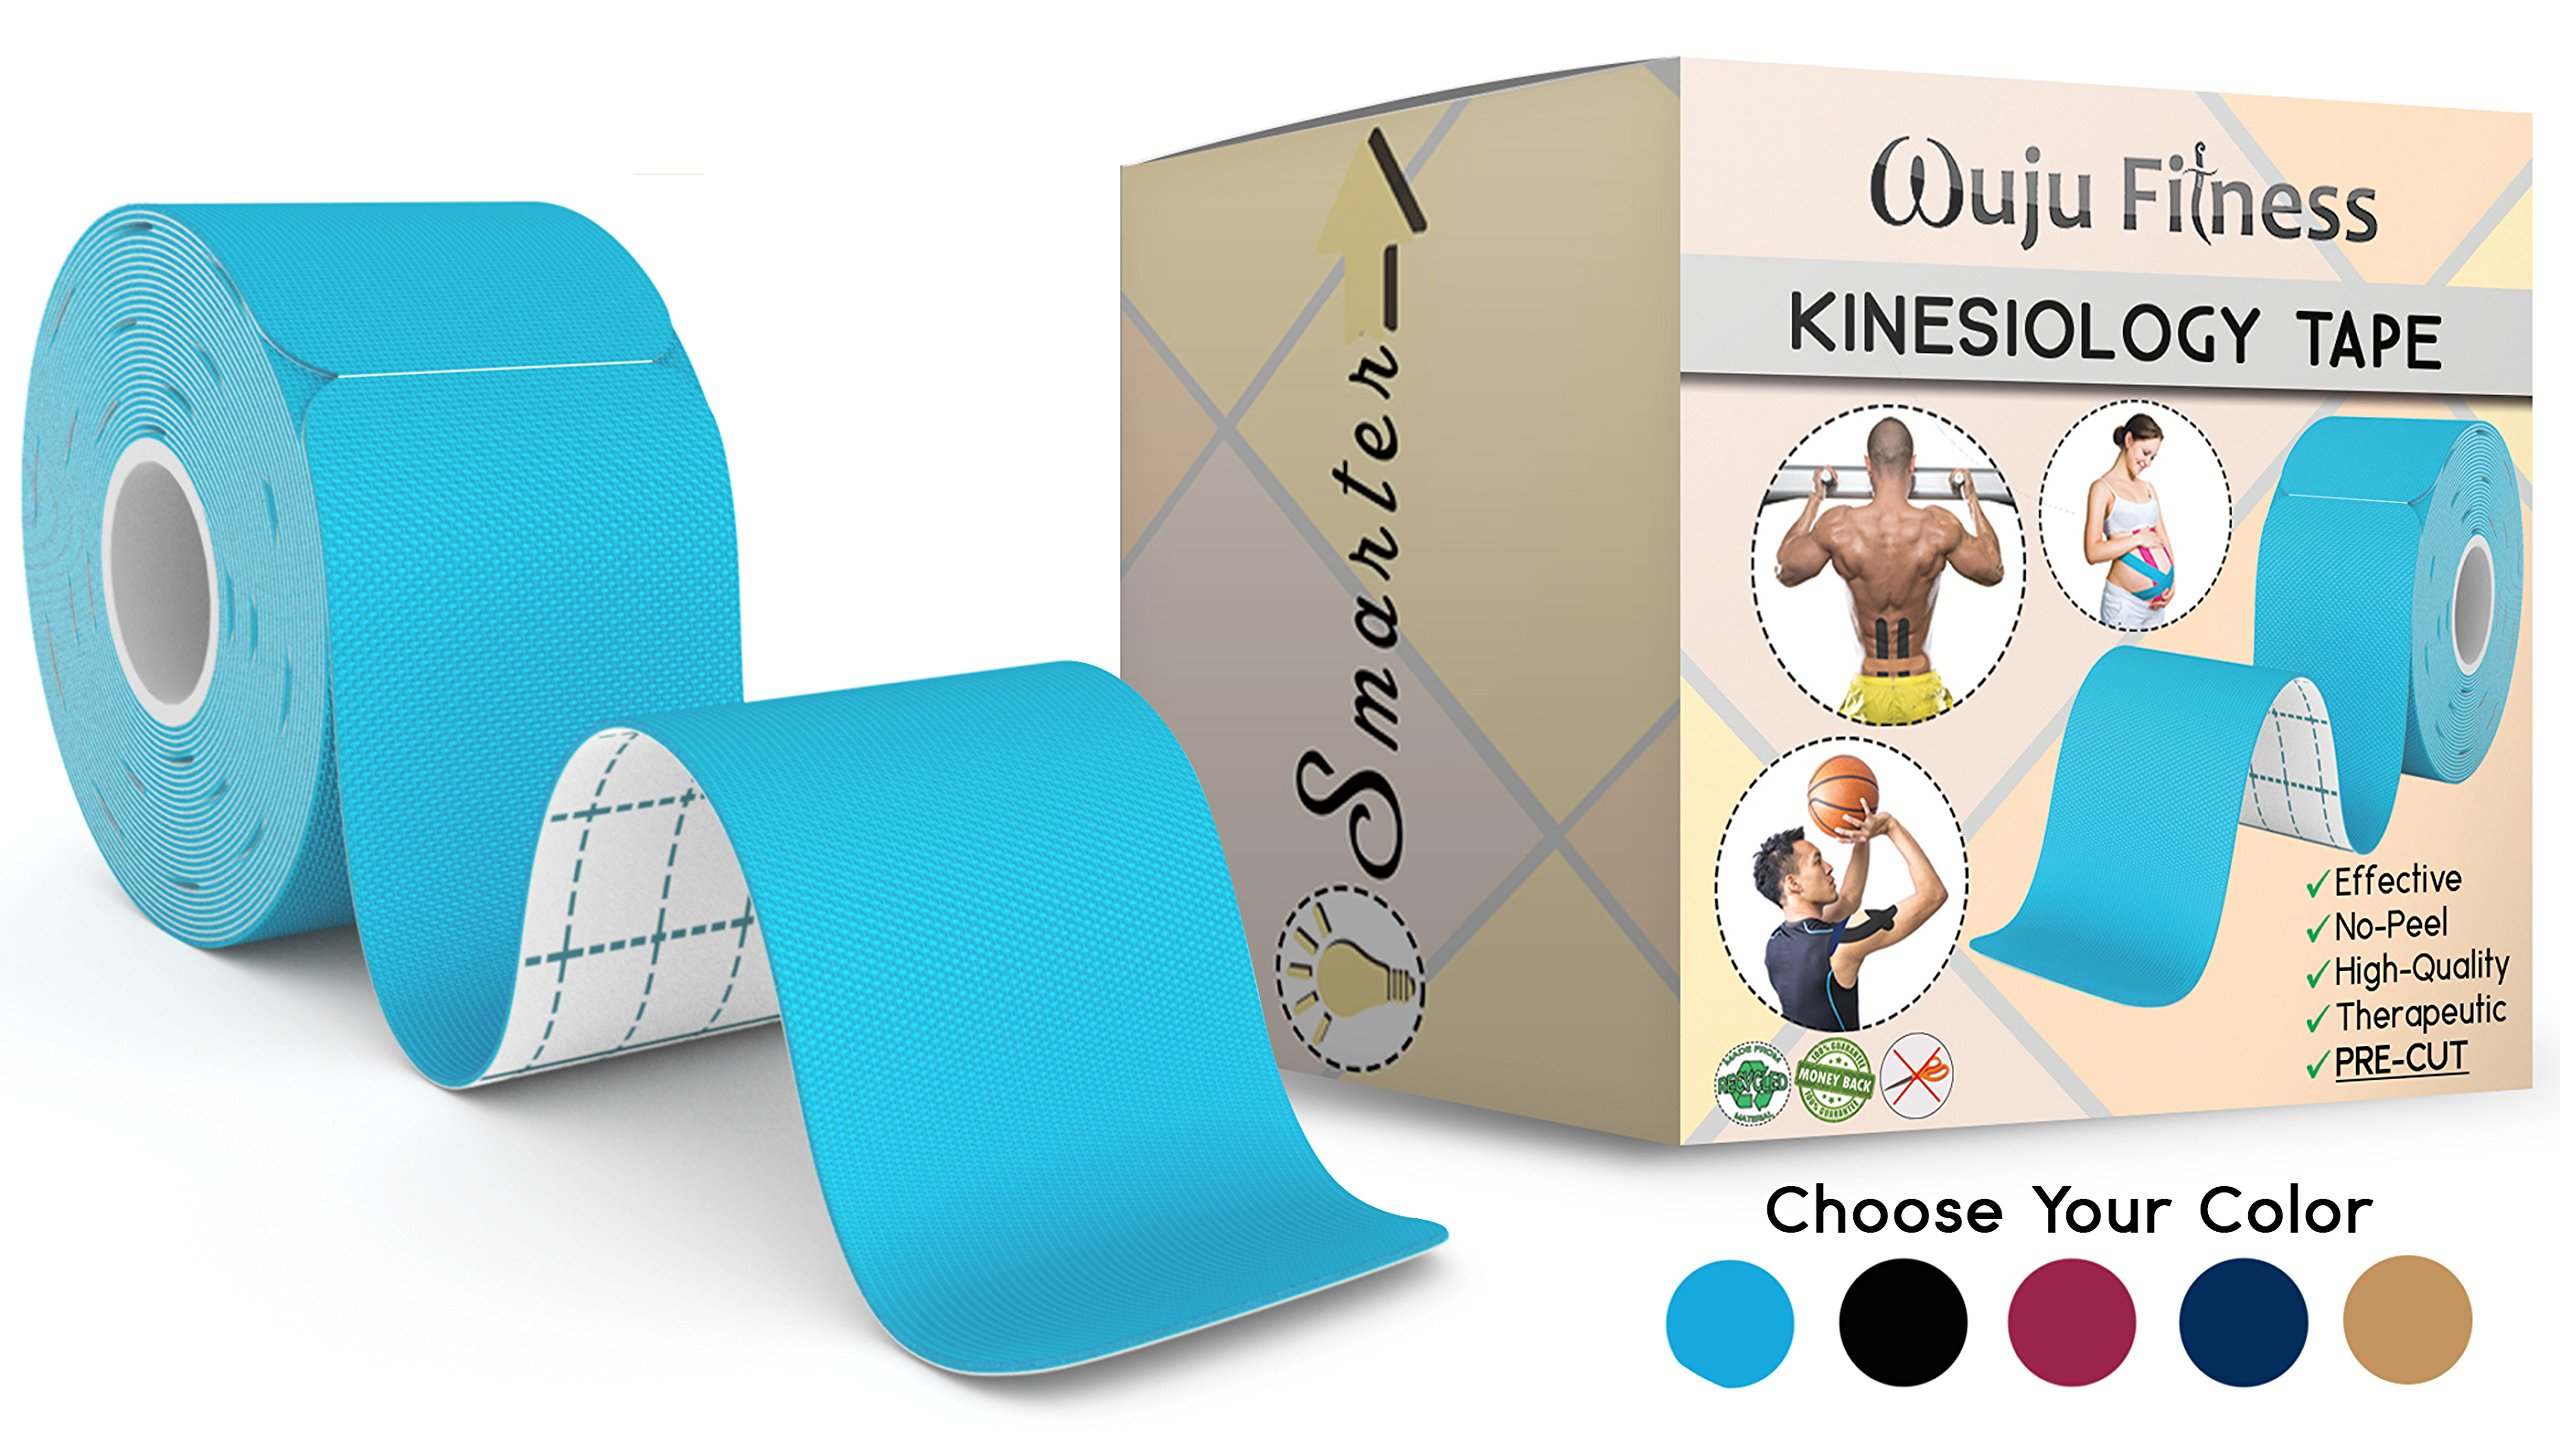 """Athletic Tape for First Aid Kit, Physical Support Therapy, Sports Exercises. Lower Back, Heel, Foot, Joint, Shoulder, Muscle and Plantar Fasciitis Pain Relief. 20 precut Light Blue KT strips 2""""x10''"""